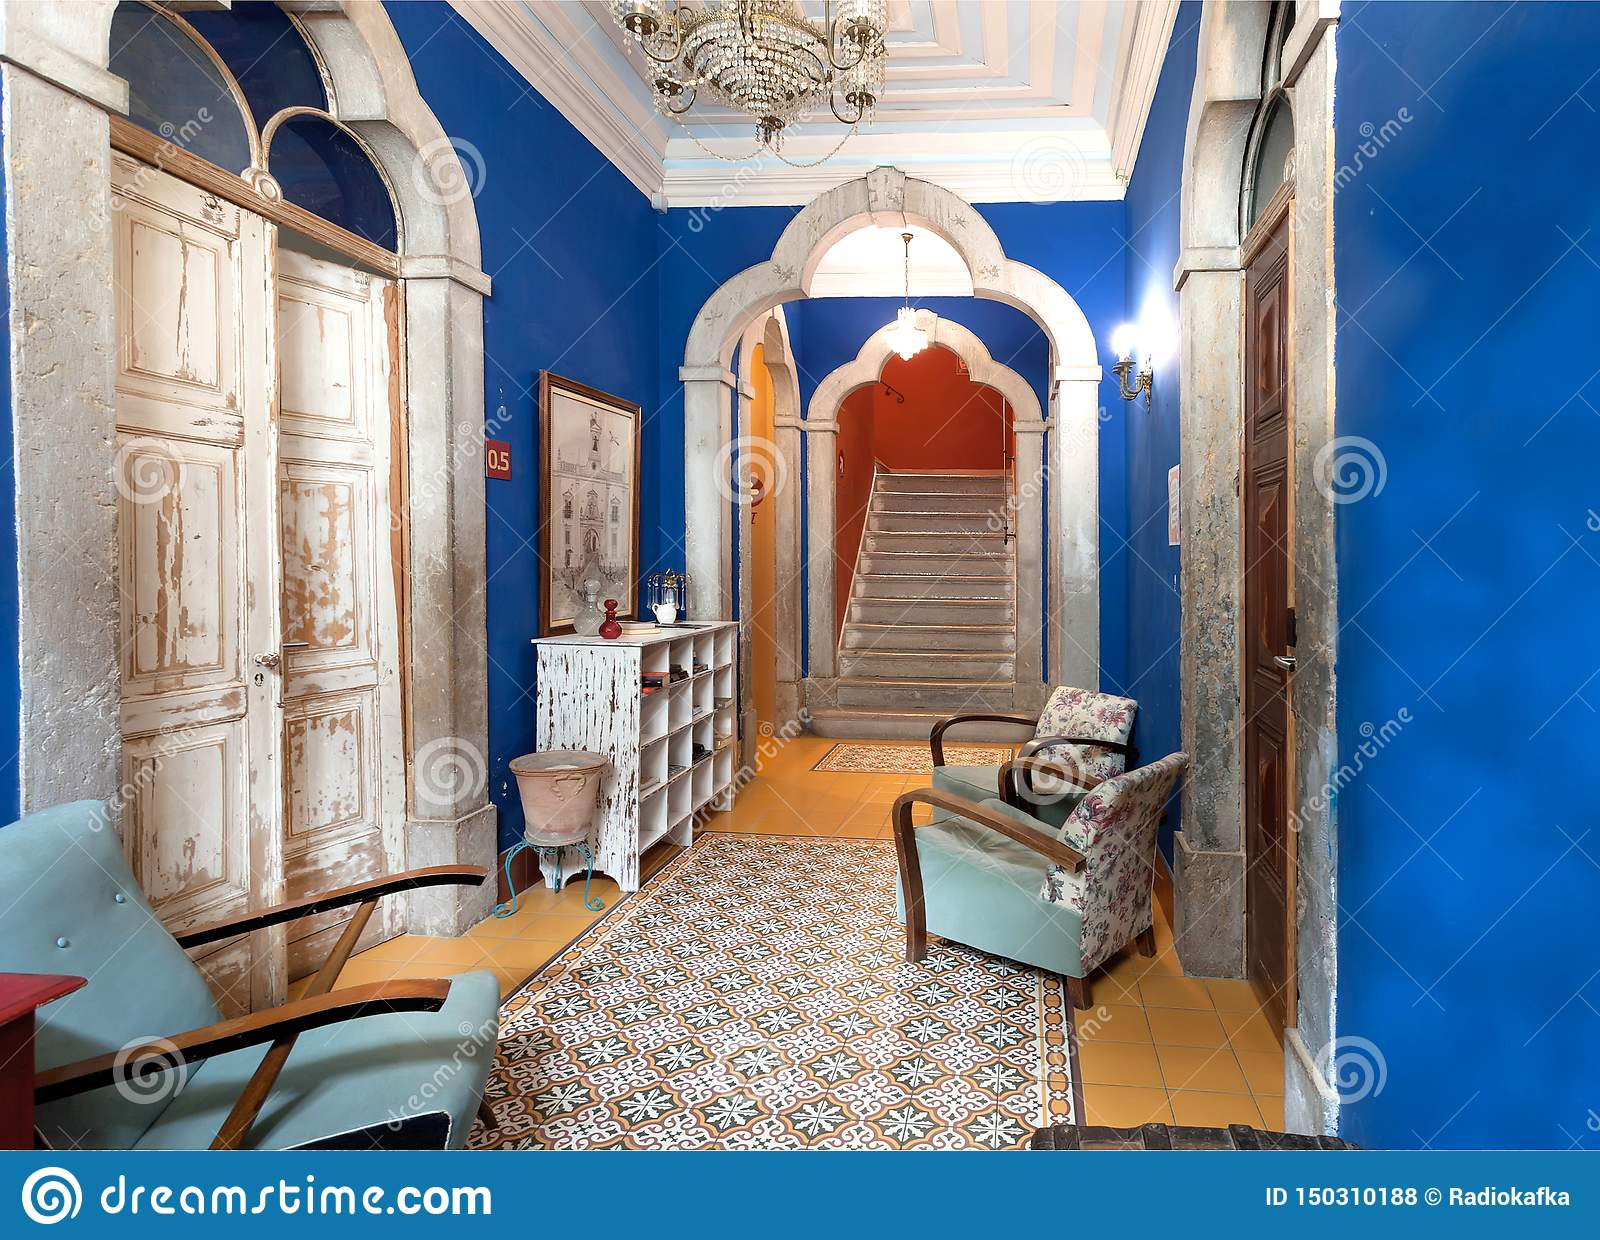 Fine Vintage Furniture Retro Room In Arabic Style Inside Hotel Home Interior And Landscaping Elinuenasavecom